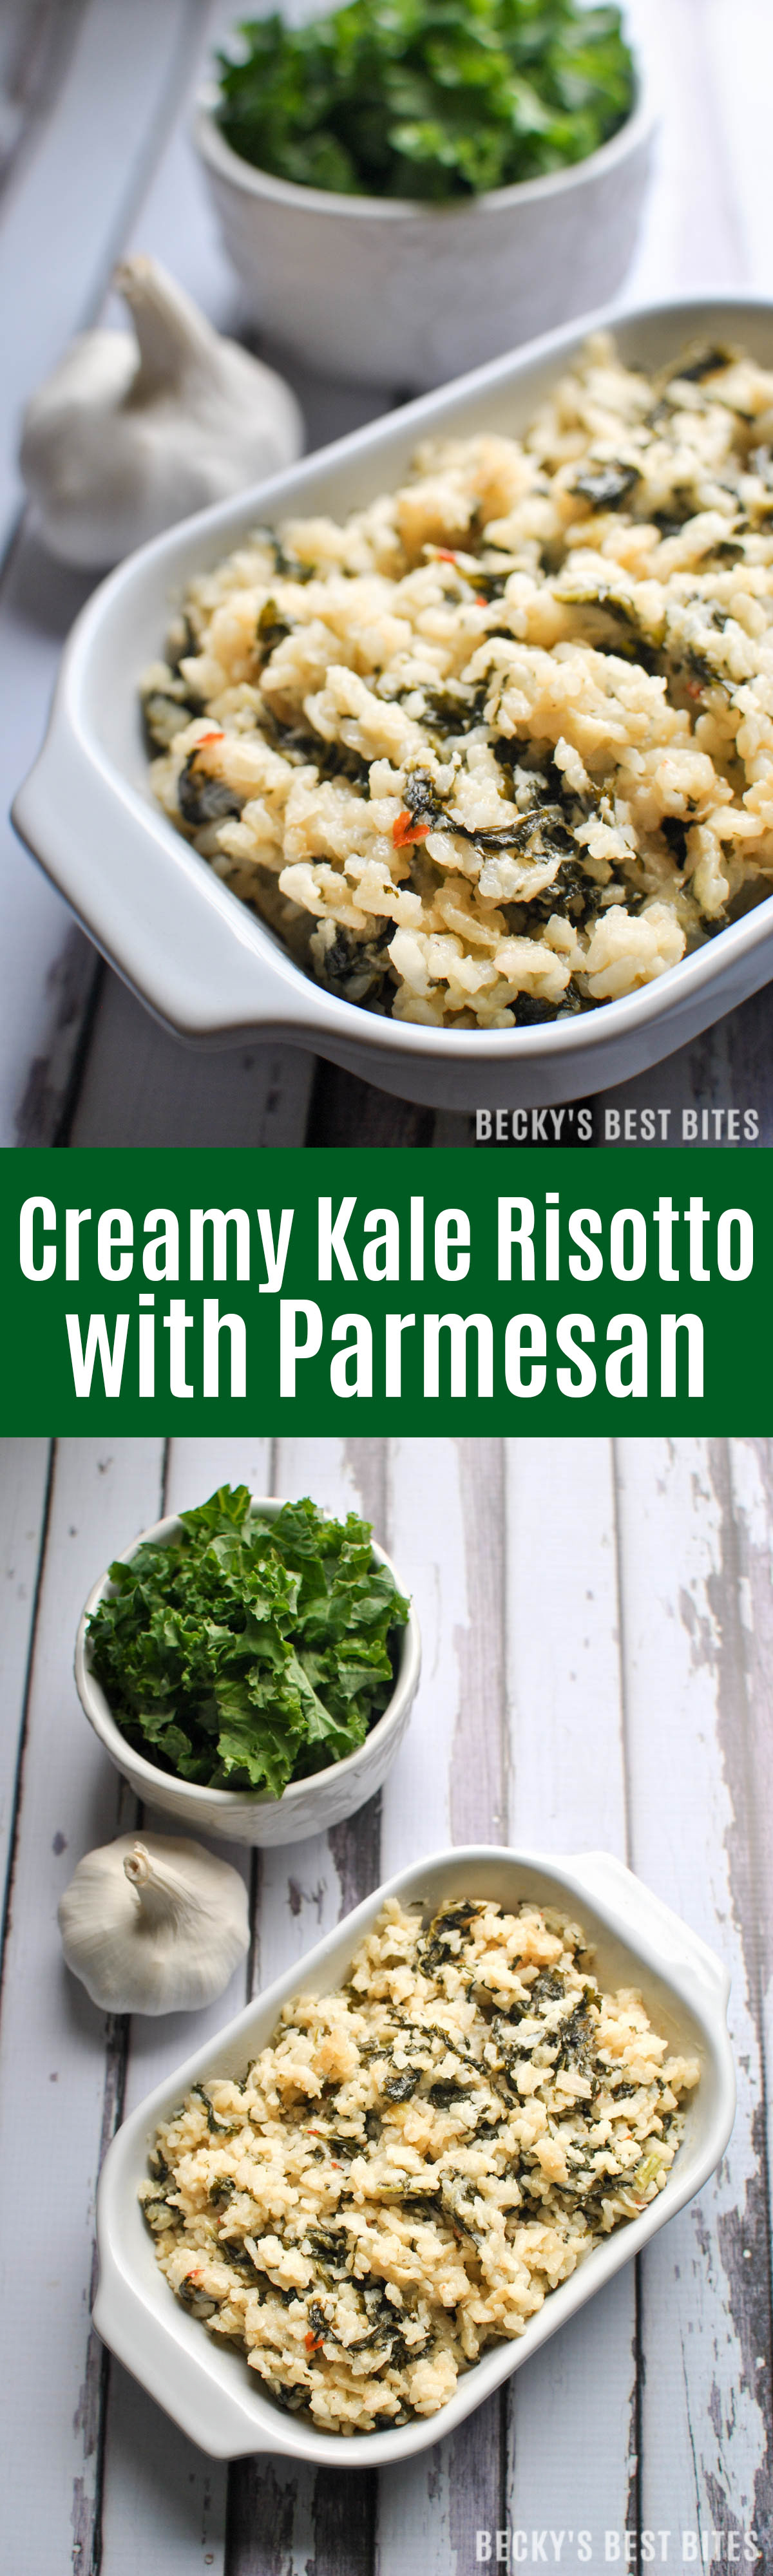 Creamy Kale Risotto with Parmesan is made without butter or cream. A healthy dinner recipe as a side with a lean protein or as a yummy vegetarian main dish. | beckysbestbittes.com